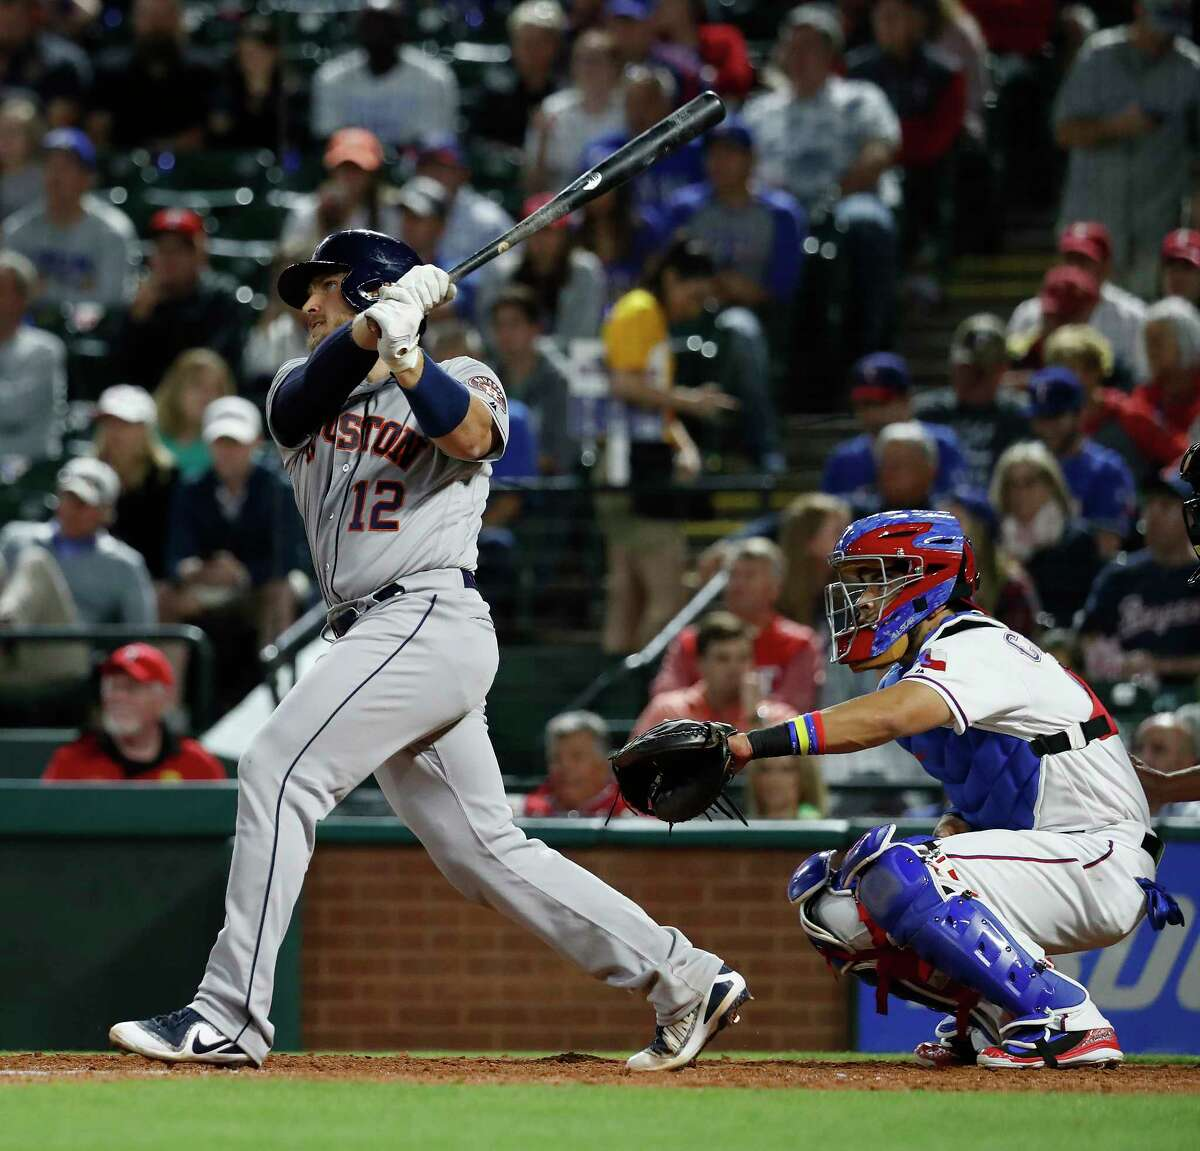 Houston Astros catcher Max Stassi (12) hits an RBI double in the fifth inning of an MLB baseball game Globe Life Park, Friday, March 30, 2018, in Arlington.